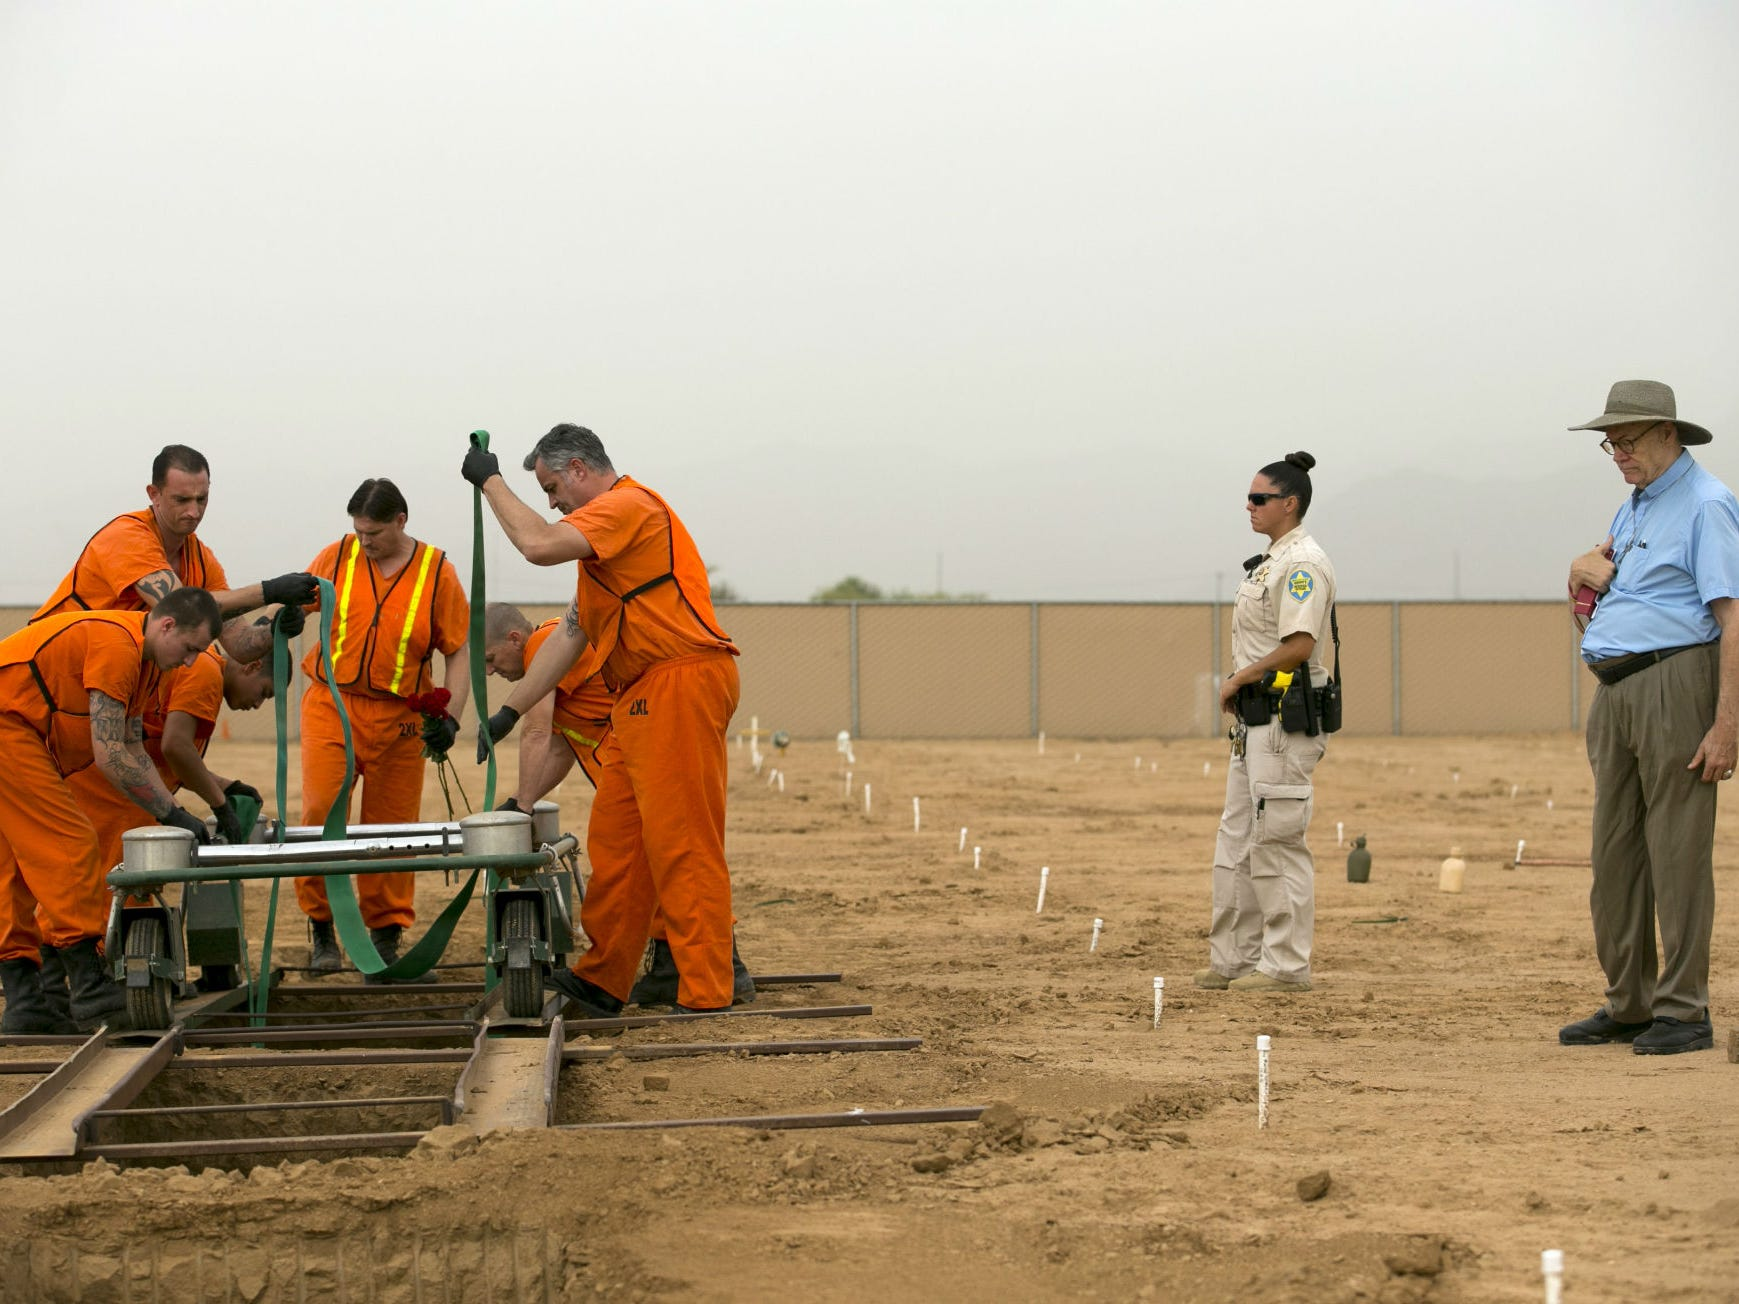 Maricopa County jail inmates assist with the burial of an indigent individual as Chaplain Thomas Chapman, the Maricopa County coordinator for indigent burials, oversees the burials while a Maricopa County Corrections Officer D. Prazak keeps a watchful eye at the White Tanks Cemetery in Litchfield Park on Aug. 9, 2018.